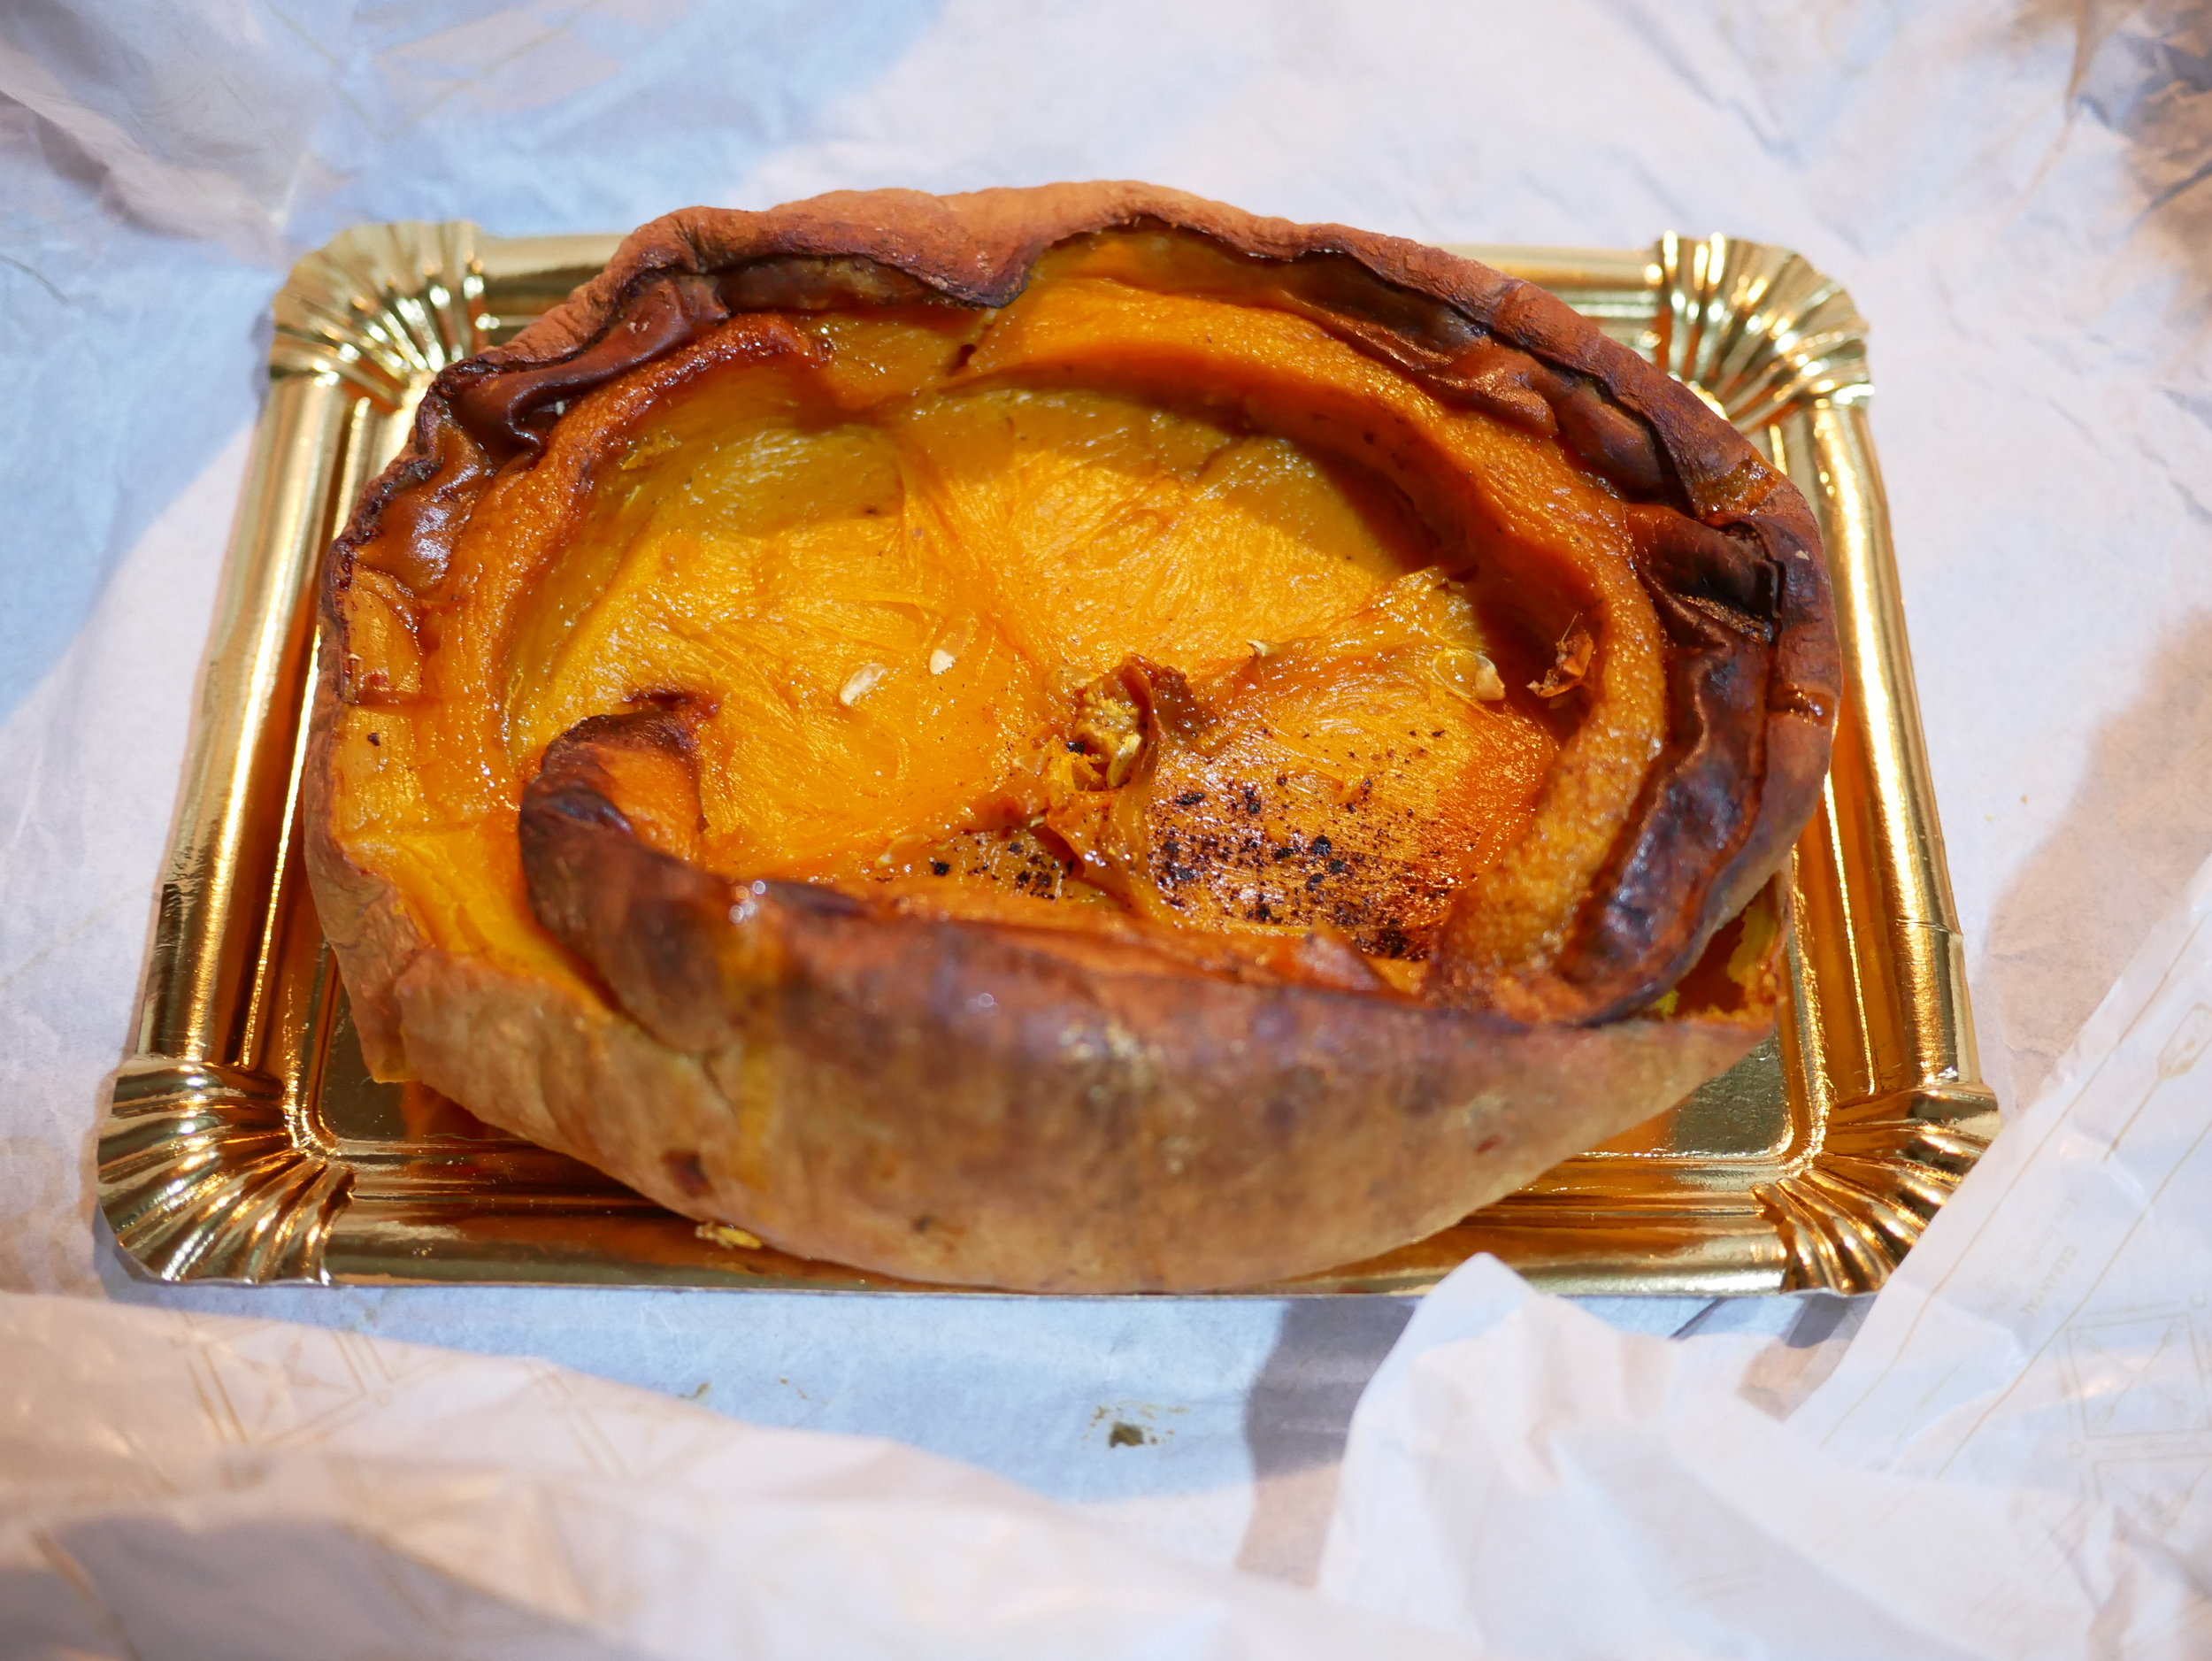 Roasted pumpkin from the bakery